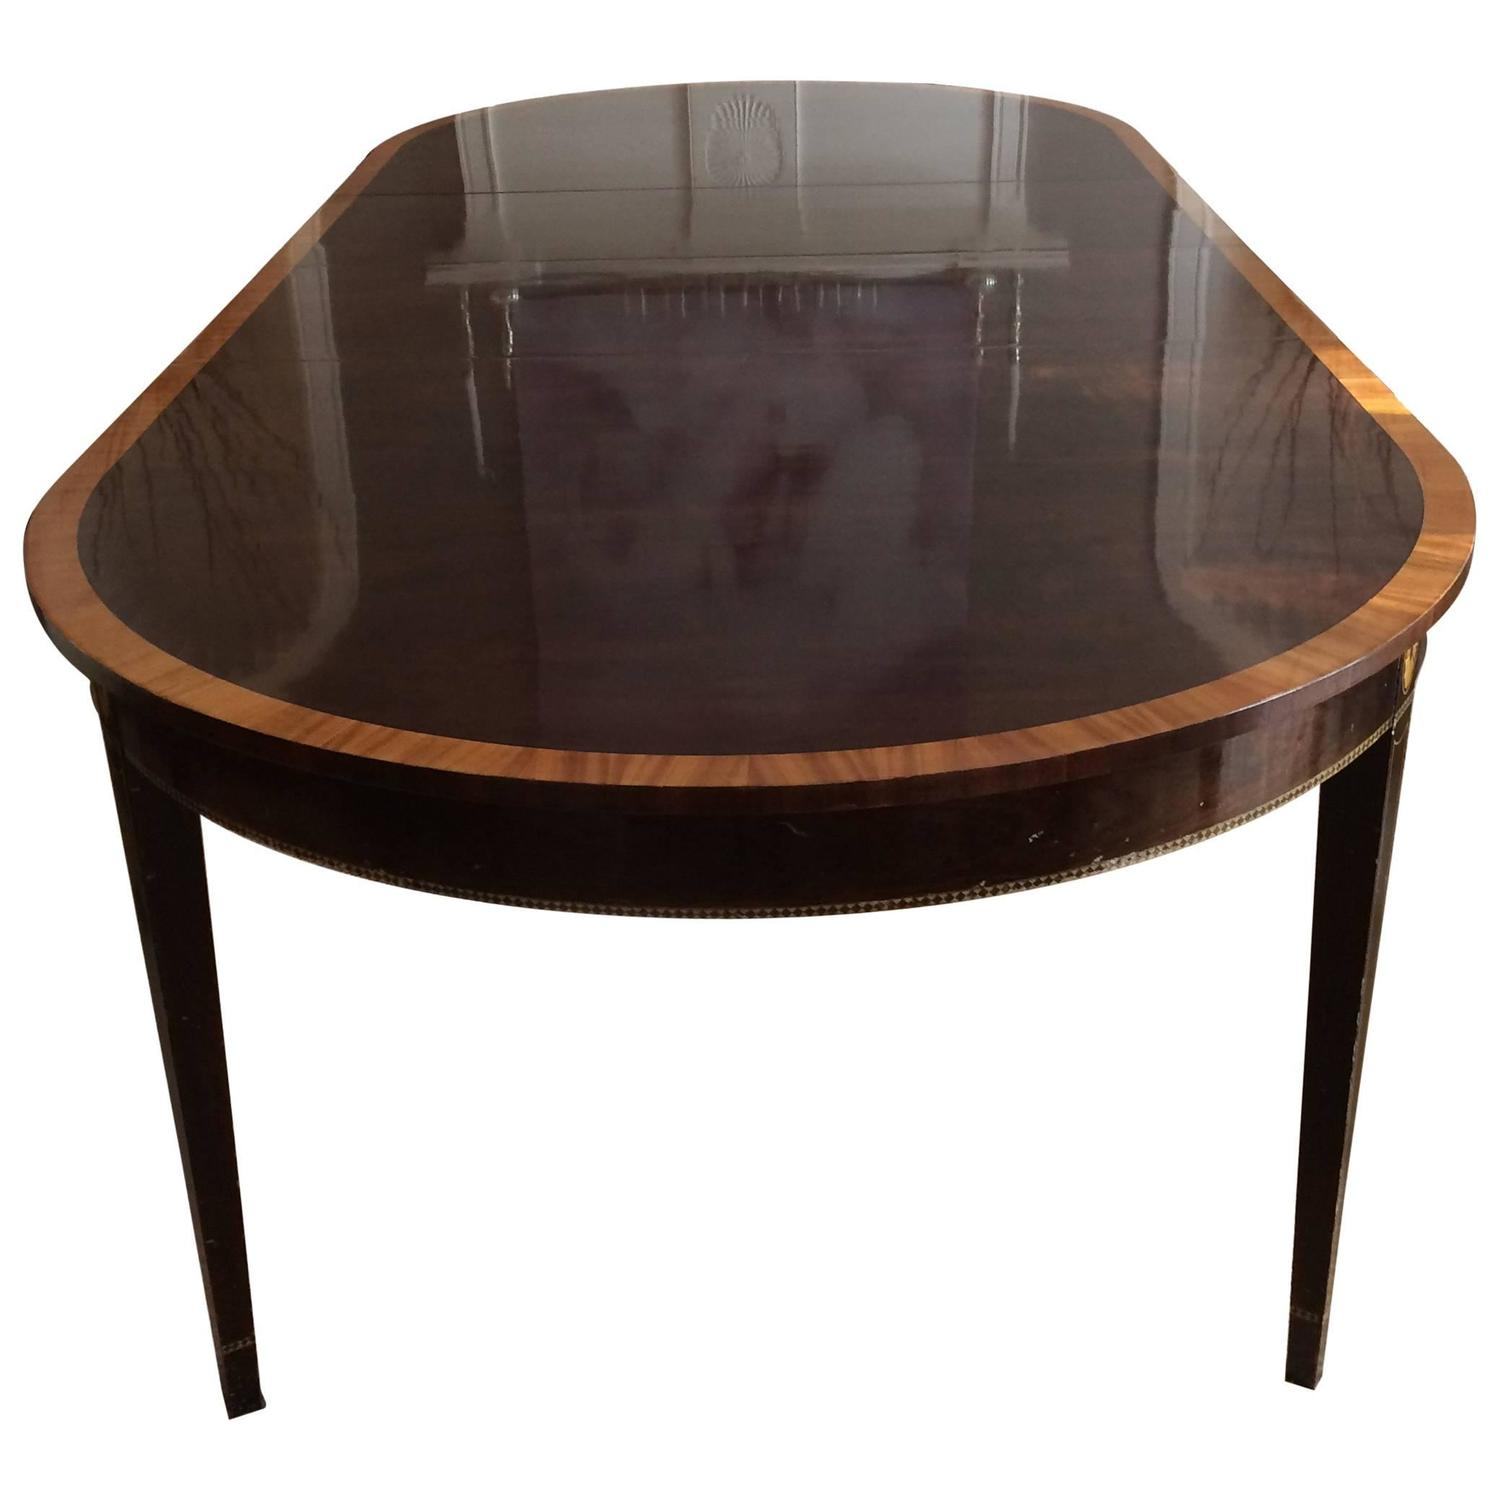 Elegant Stickley Oval Dining Table with two Leaves at 1stdibs : 5883103z from www.1stdibs.com size 1500 x 1500 jpeg 77kB